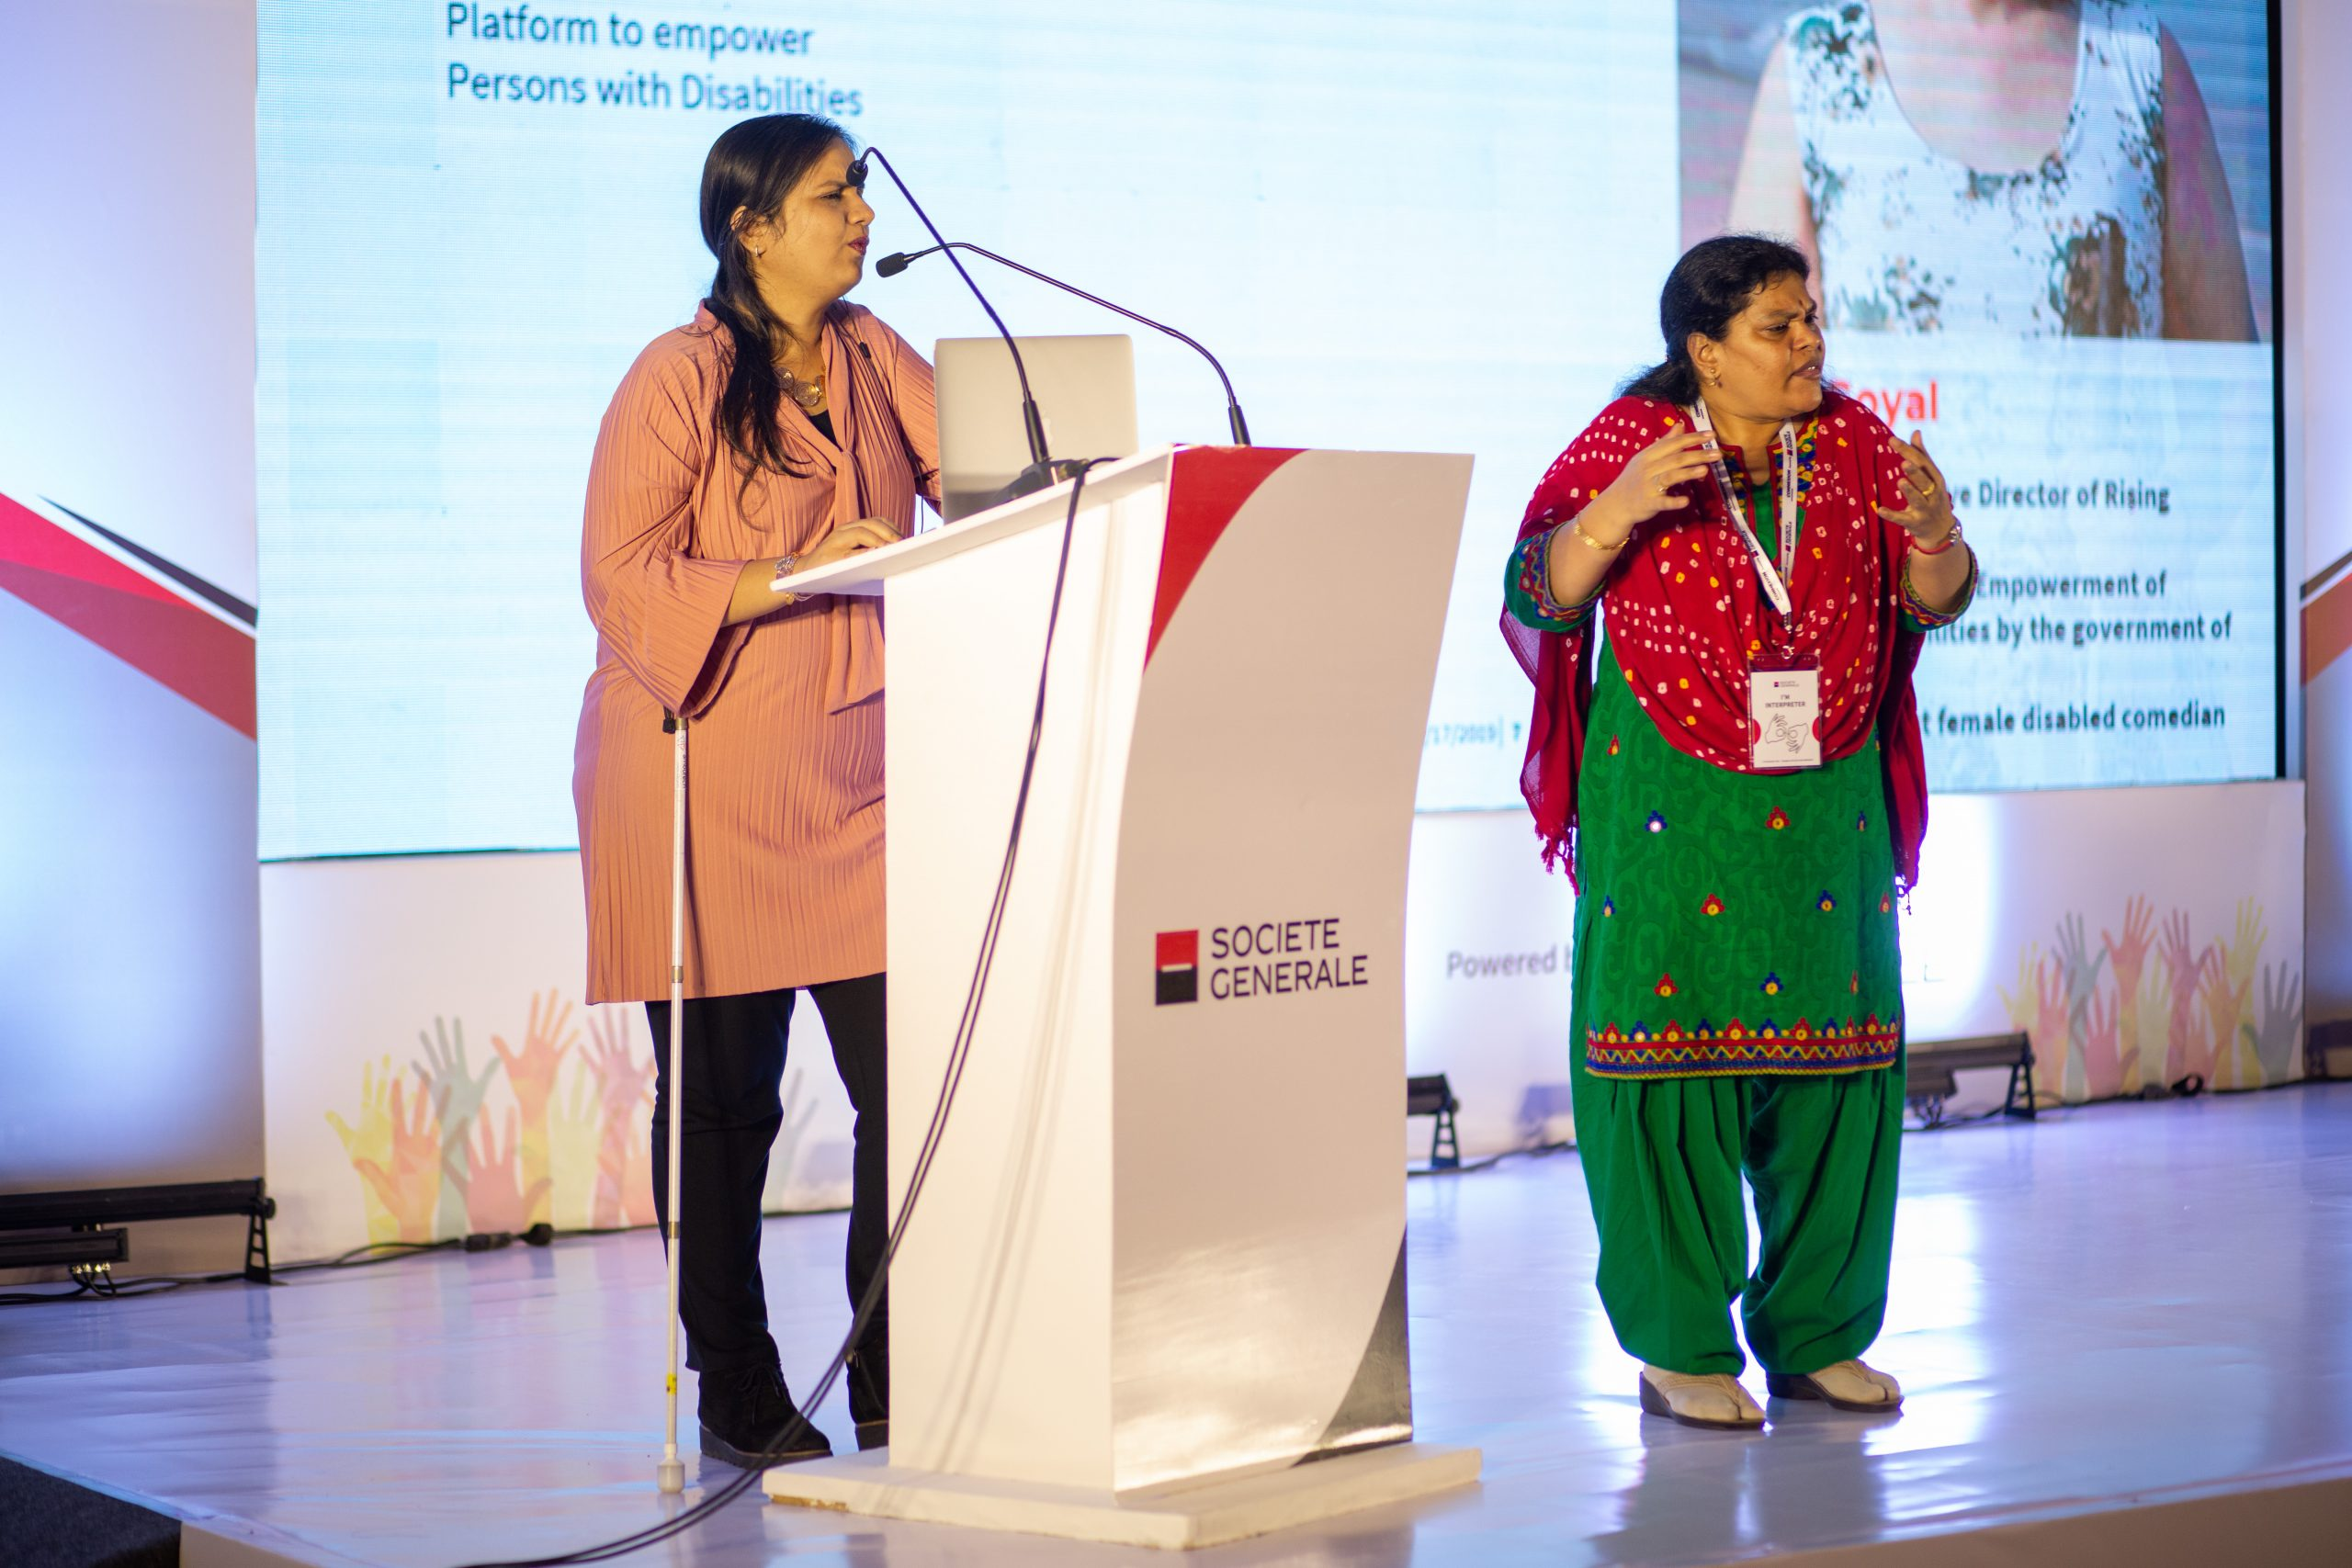 "On the left of the image, Nidhi standing and speaking at a white podium with the words ""Societe Generale"" written on it. On her right, the sign language interpreter stands and translates for the audience. A large white screen behind them, with a slightly blurred picture and bio of Nidhi on it."